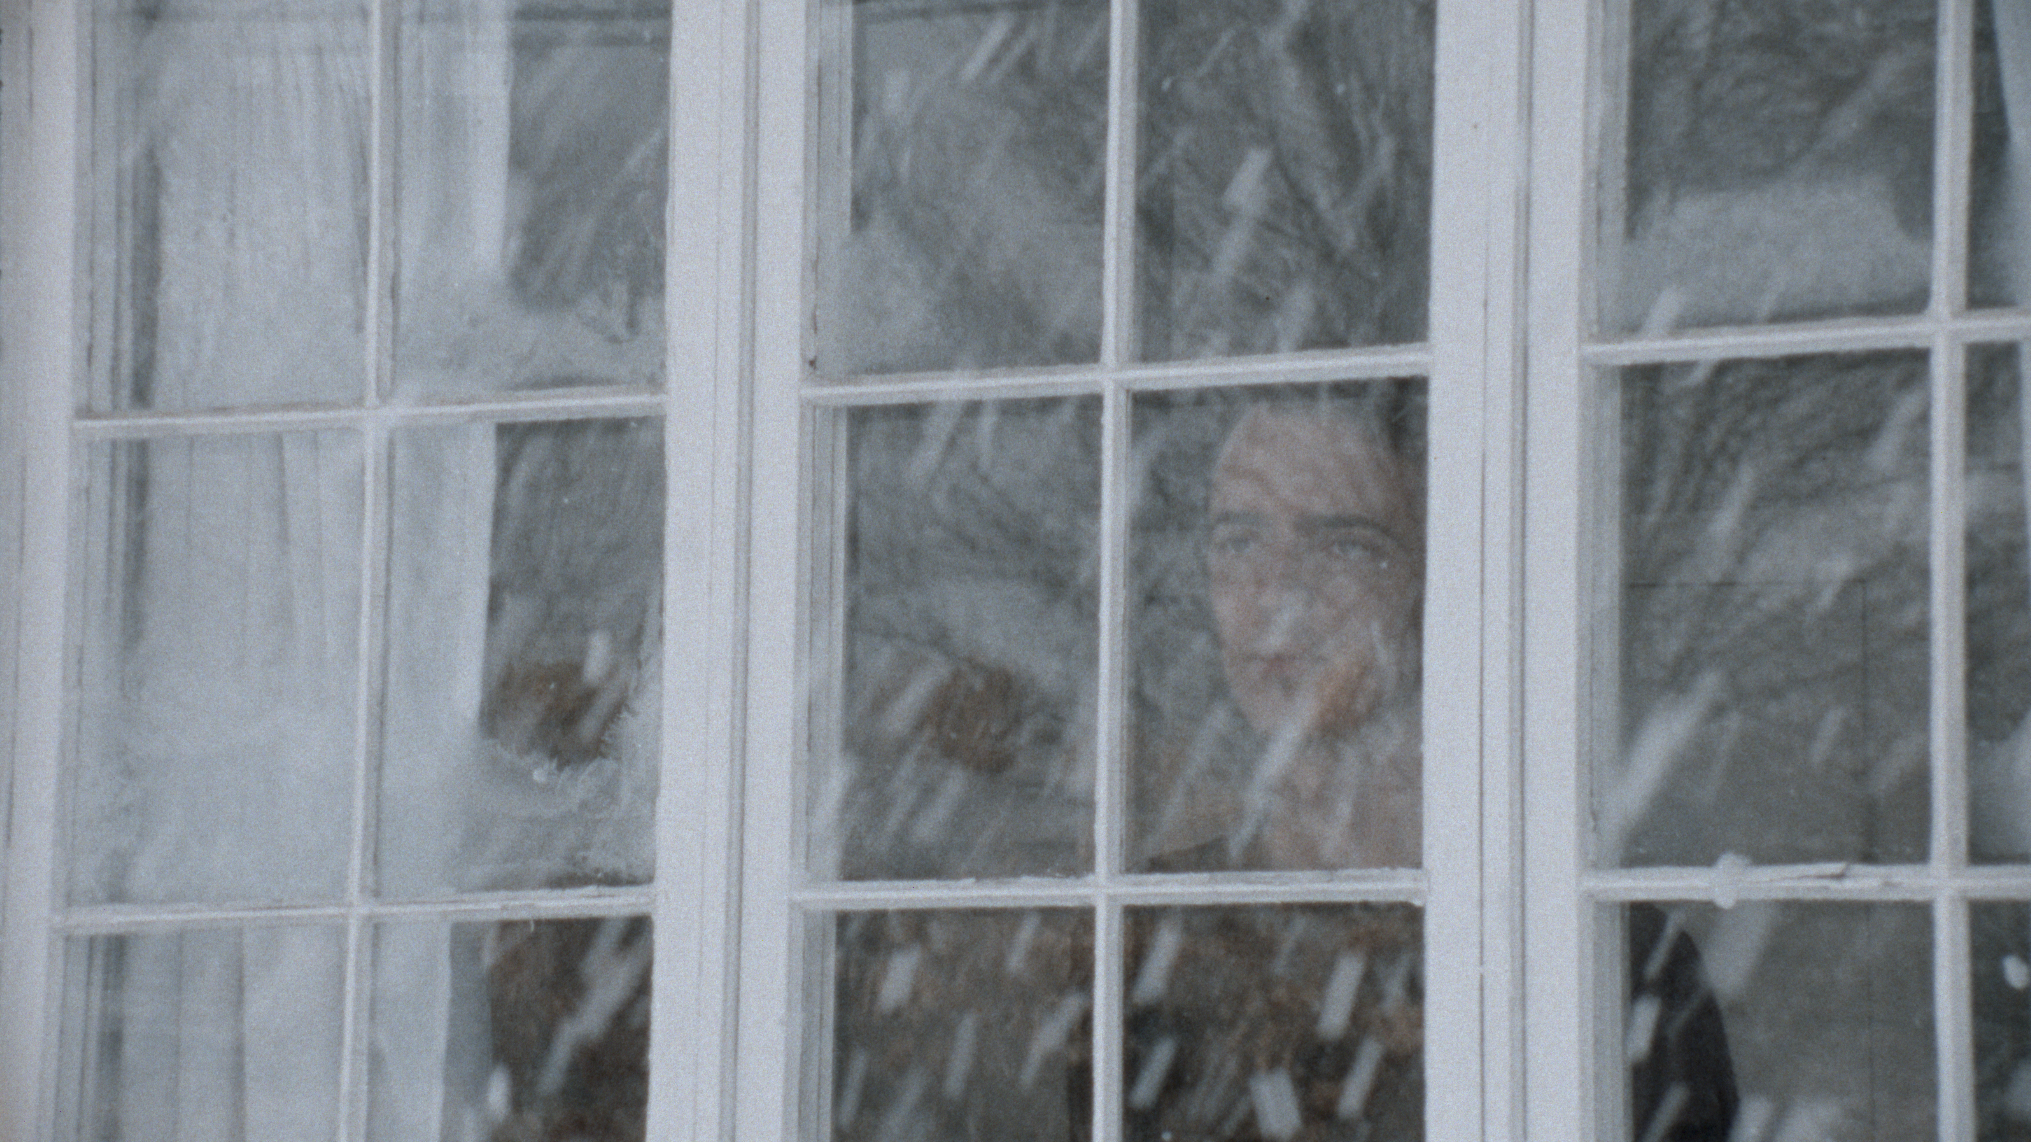 A Moment Is Enough scene still of protagonist looking at snow through window.